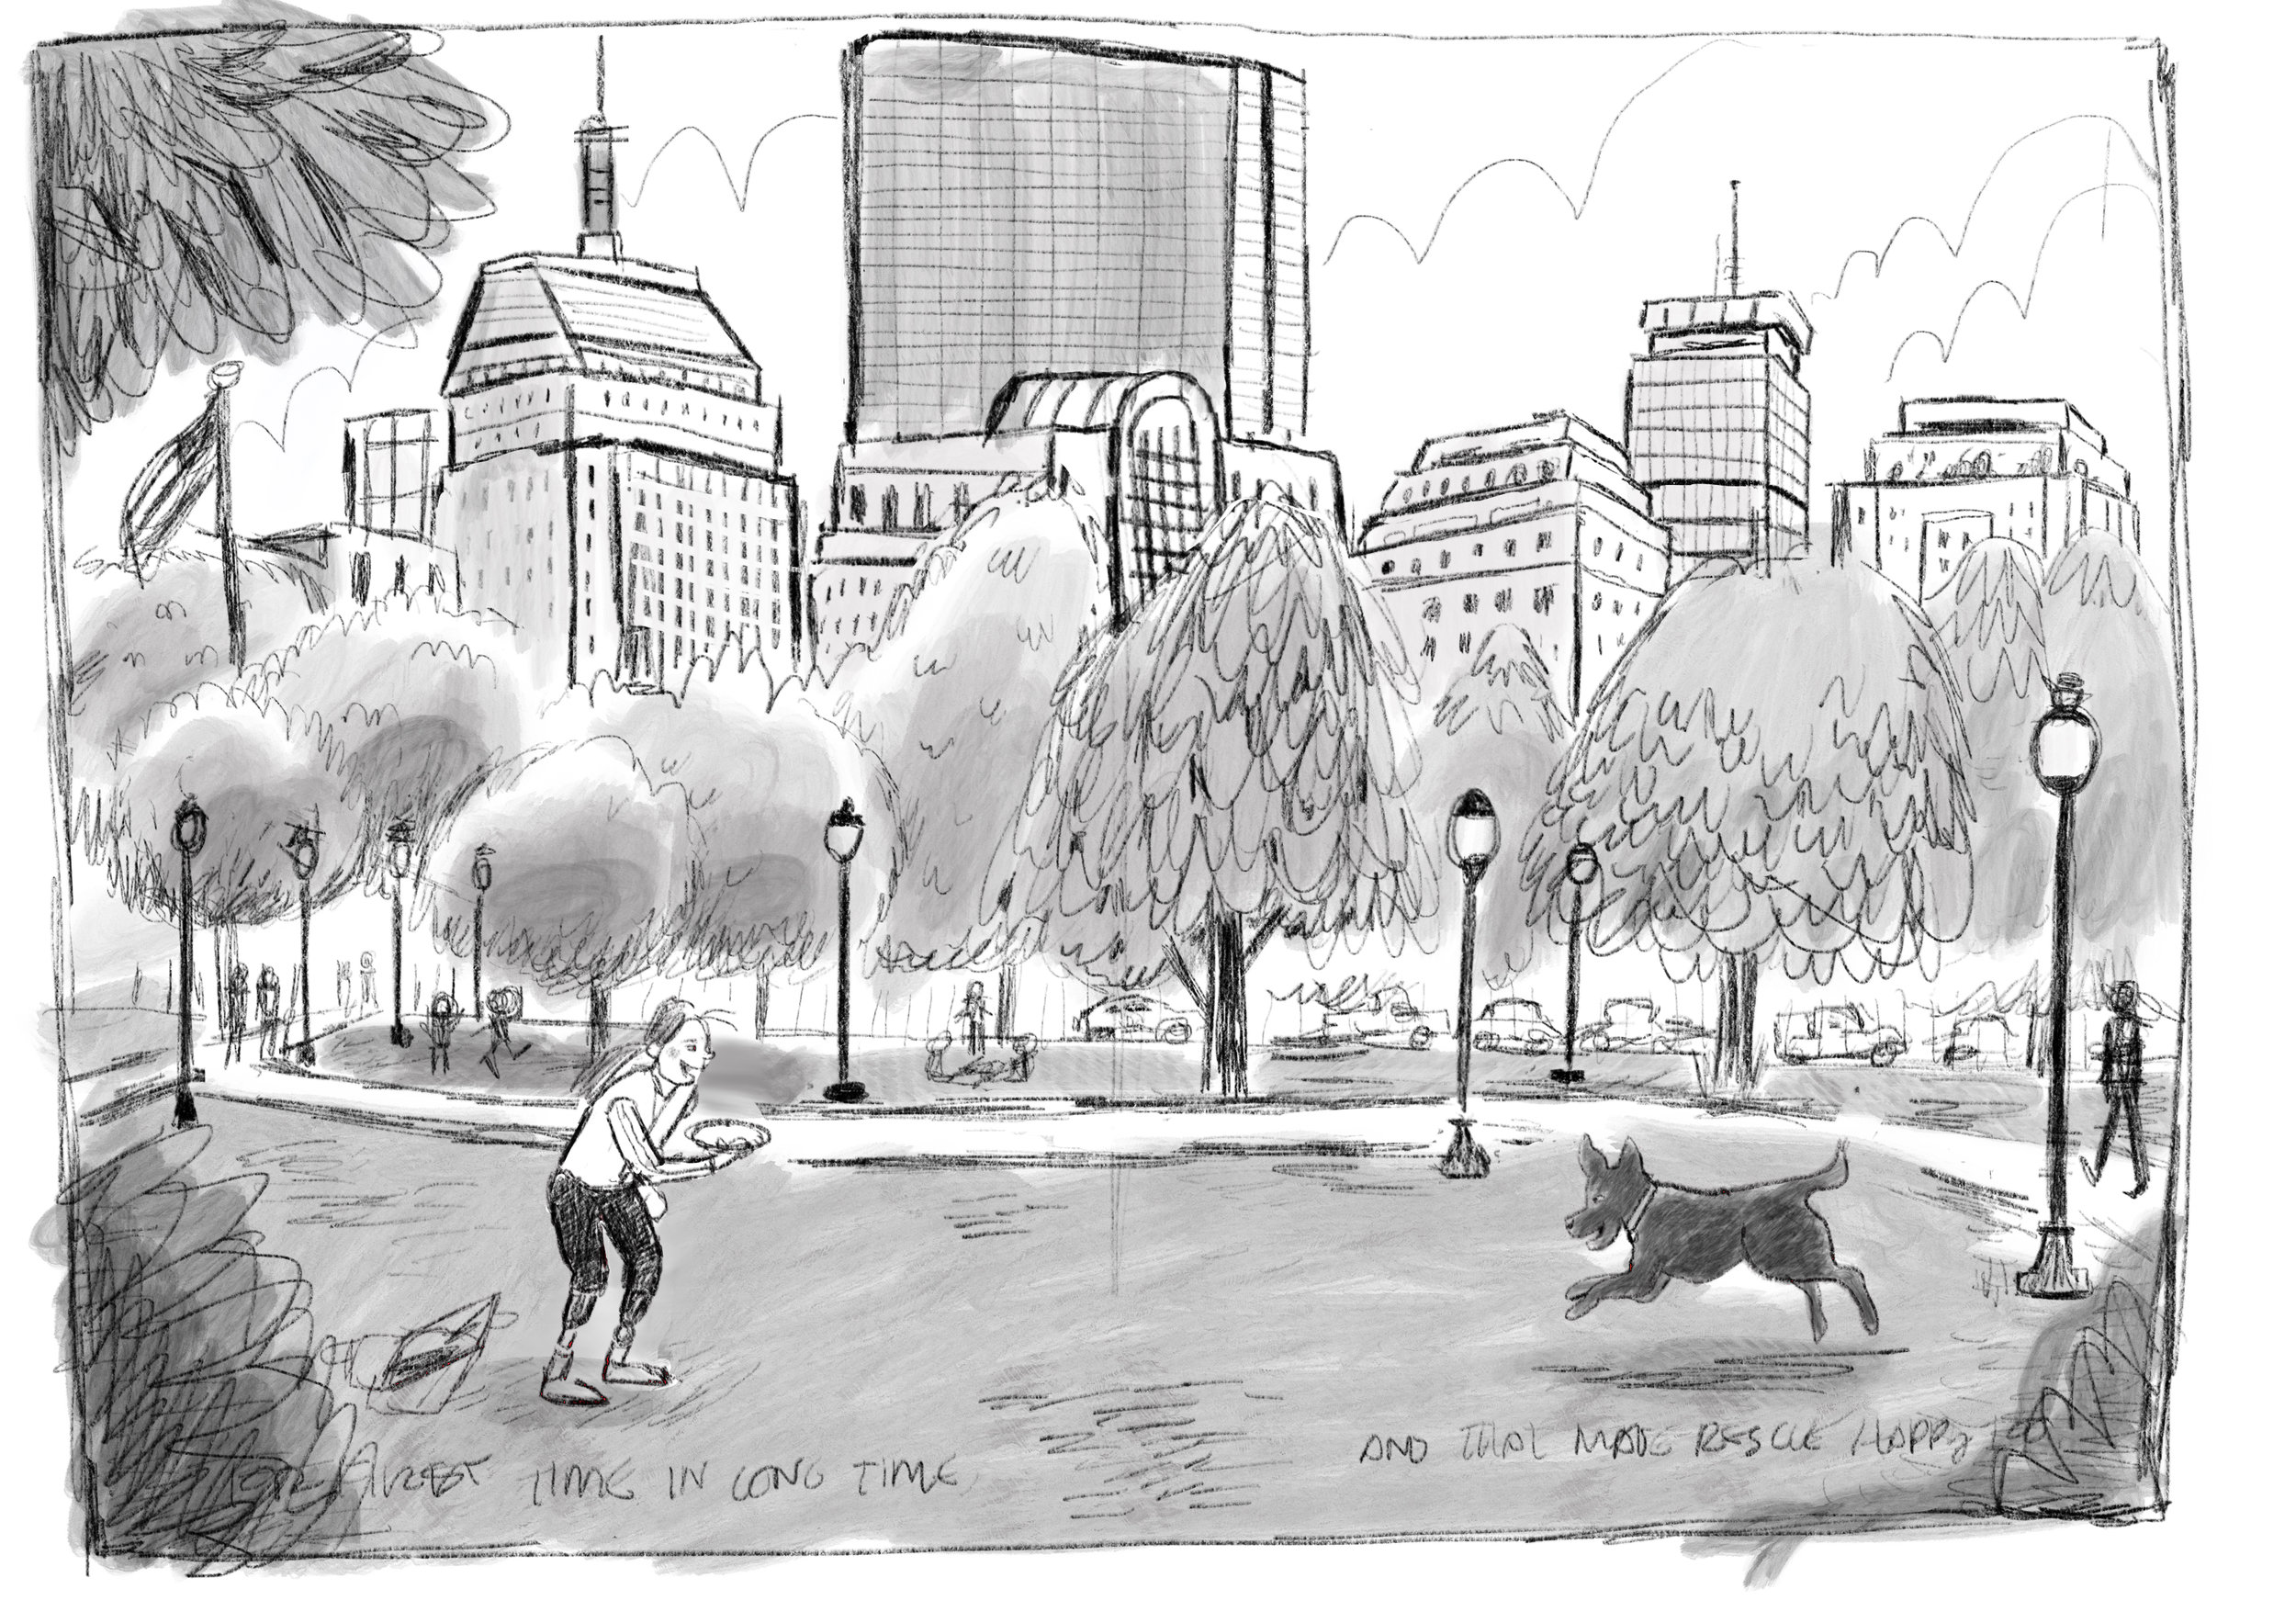 A very early concept drawing meant to show how I'd show our characters in Boston. It was important to include Boston because of the events surrounding the marathon bombing and because the authors and I call the greater Boston area home.